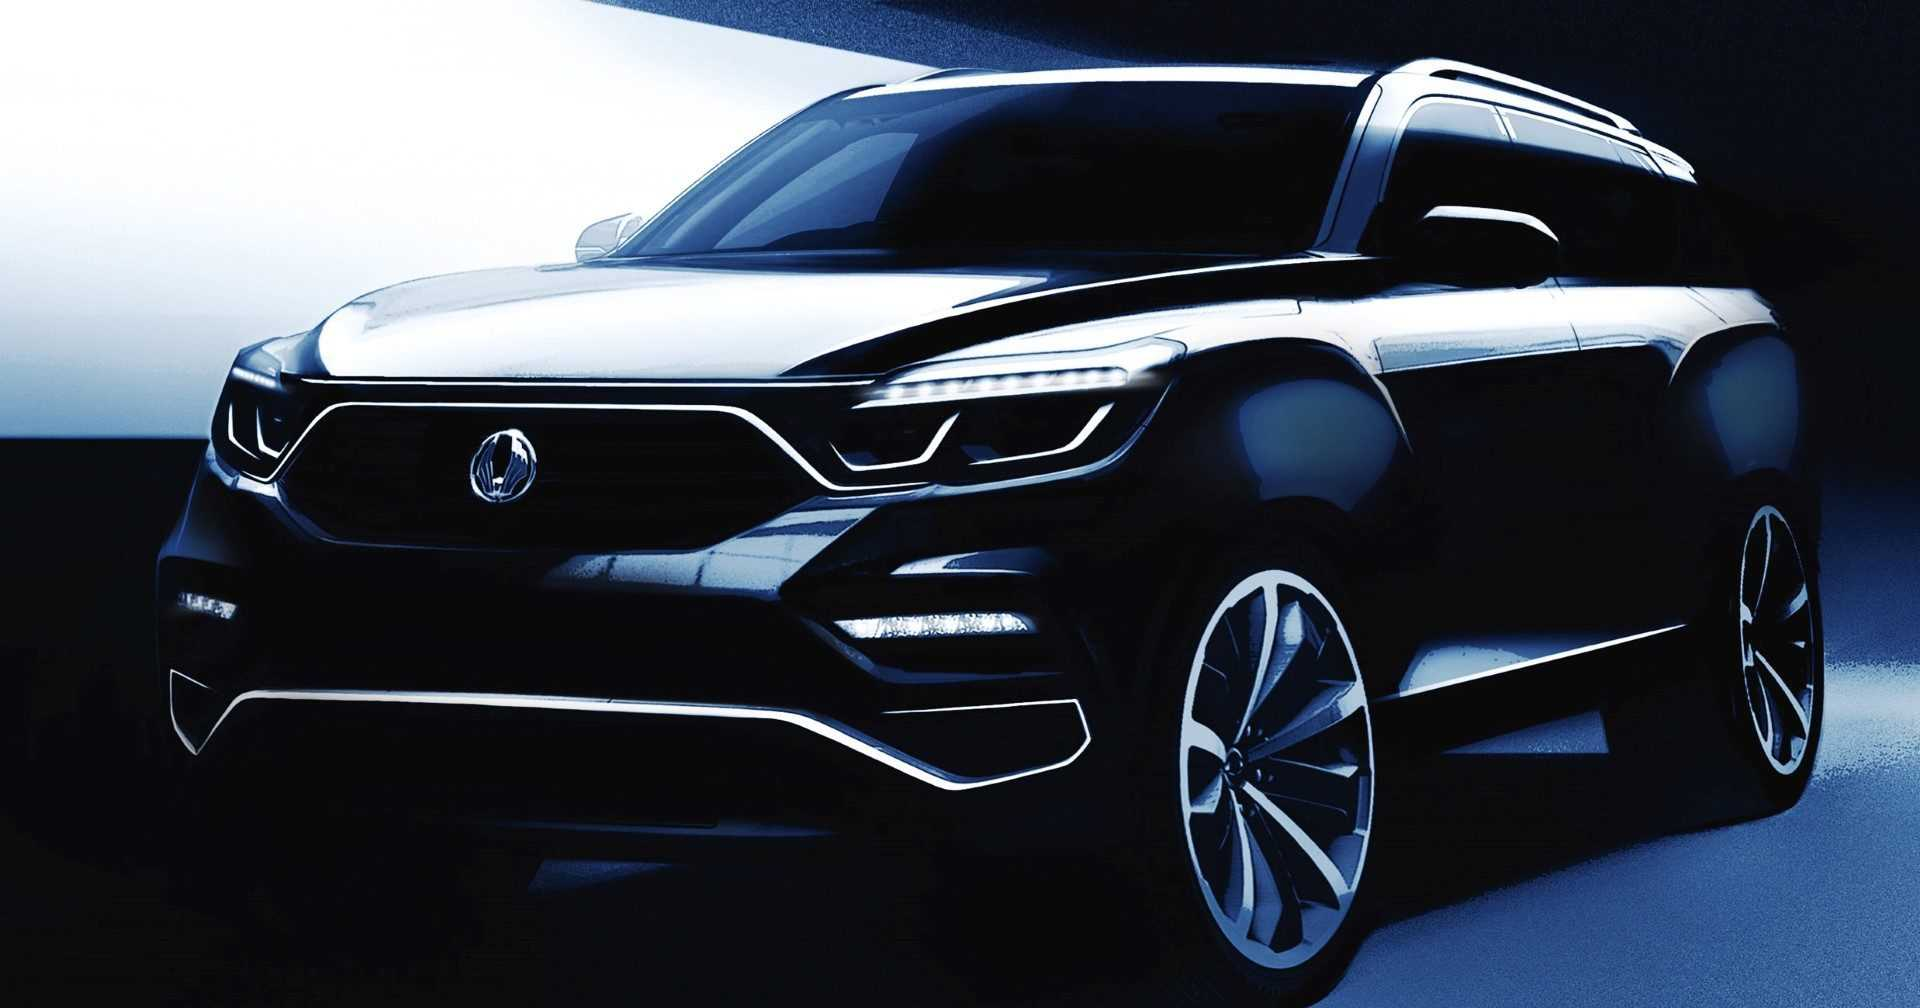 SsangYong Y400 2017 (schets)